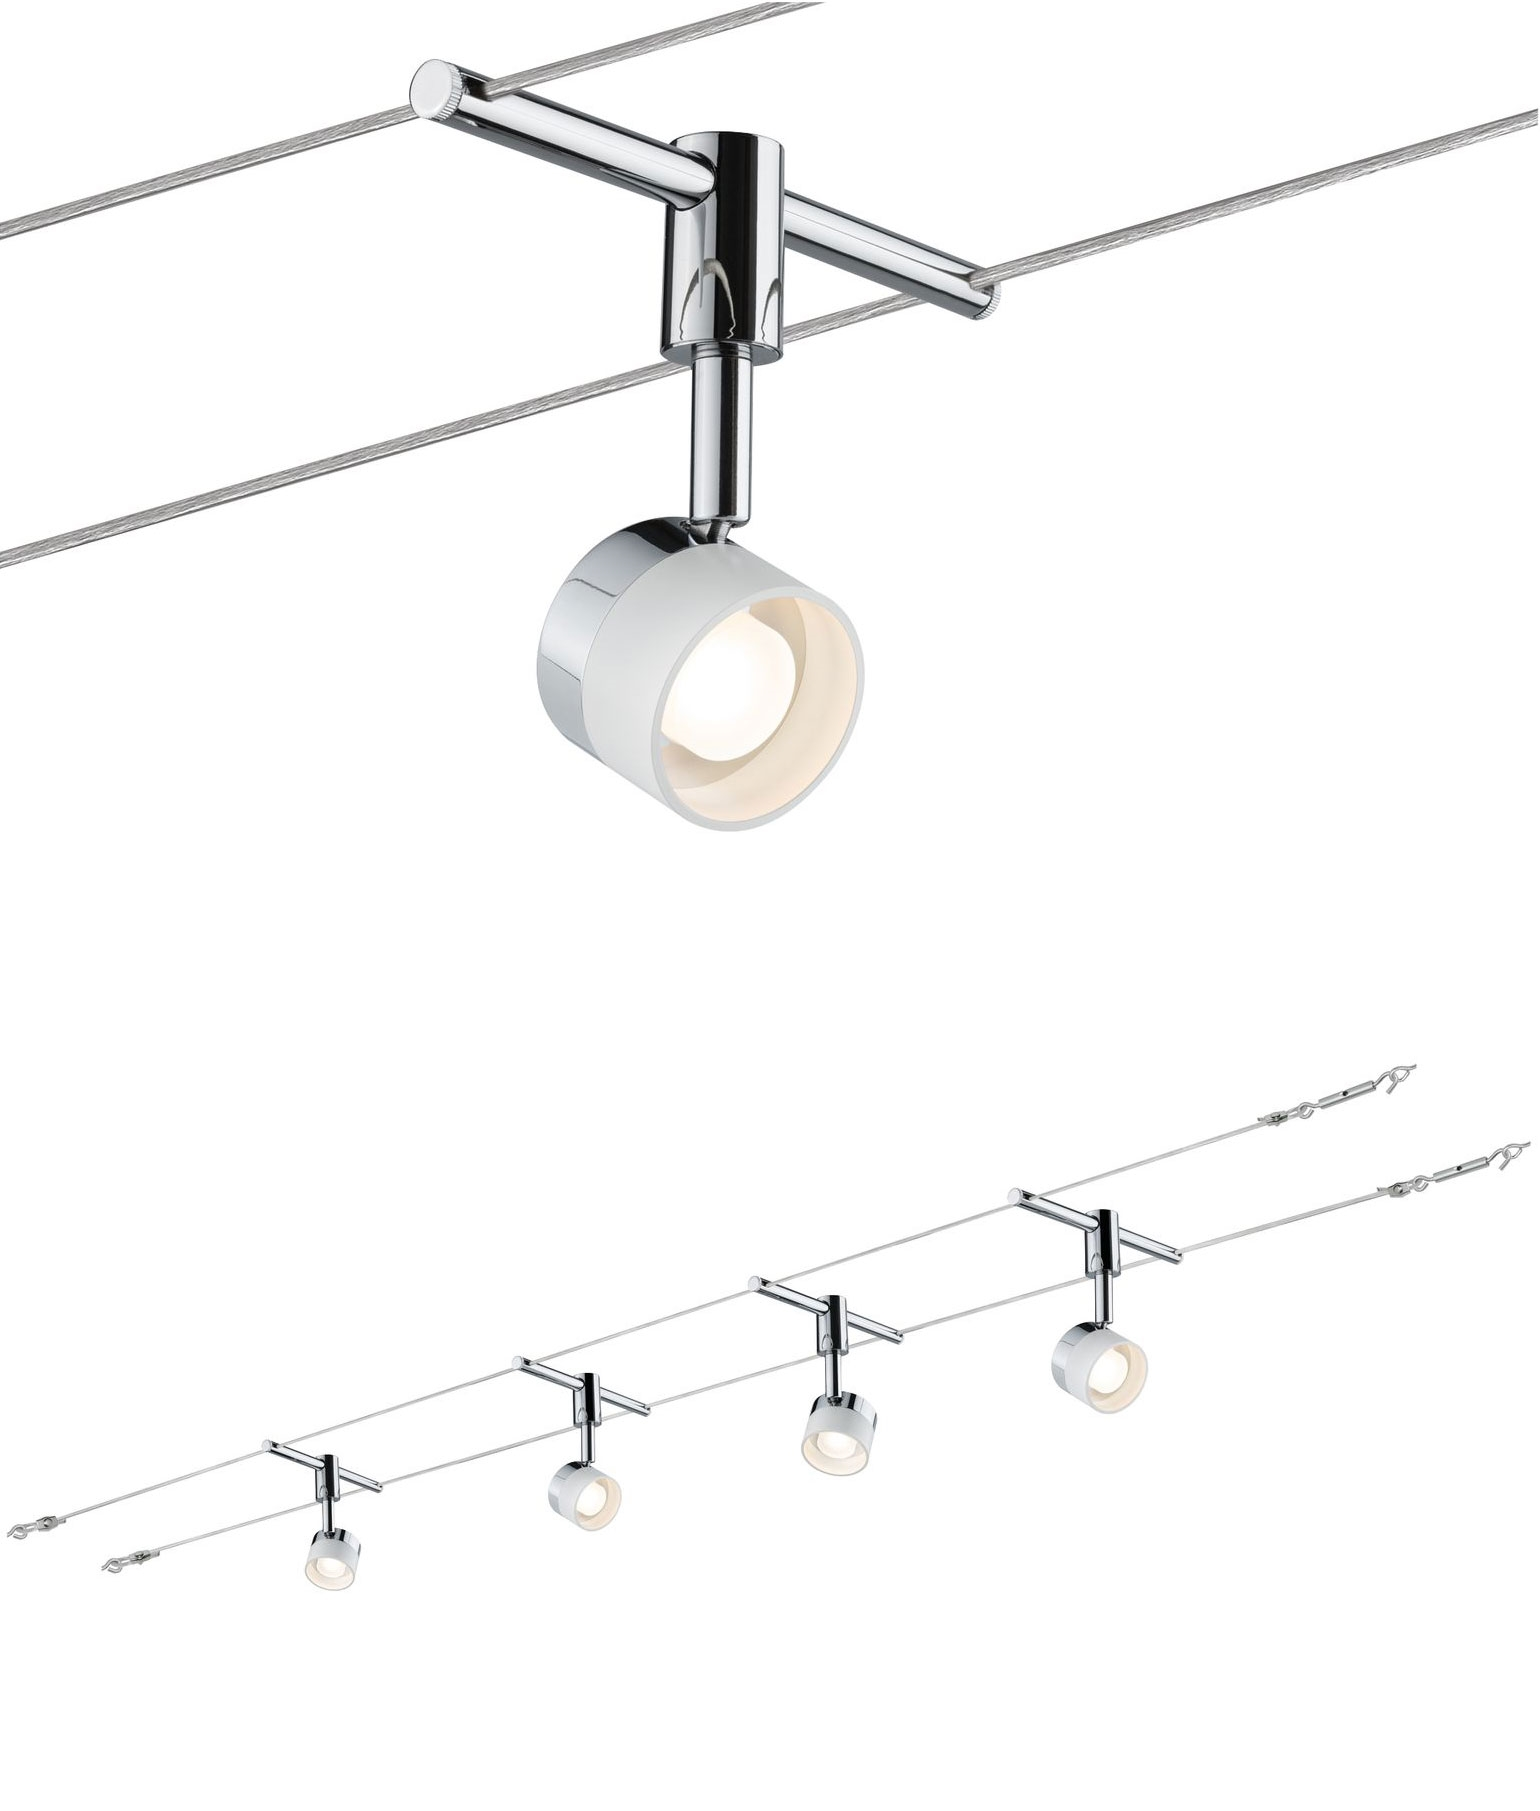 A Led lighting system solution for the